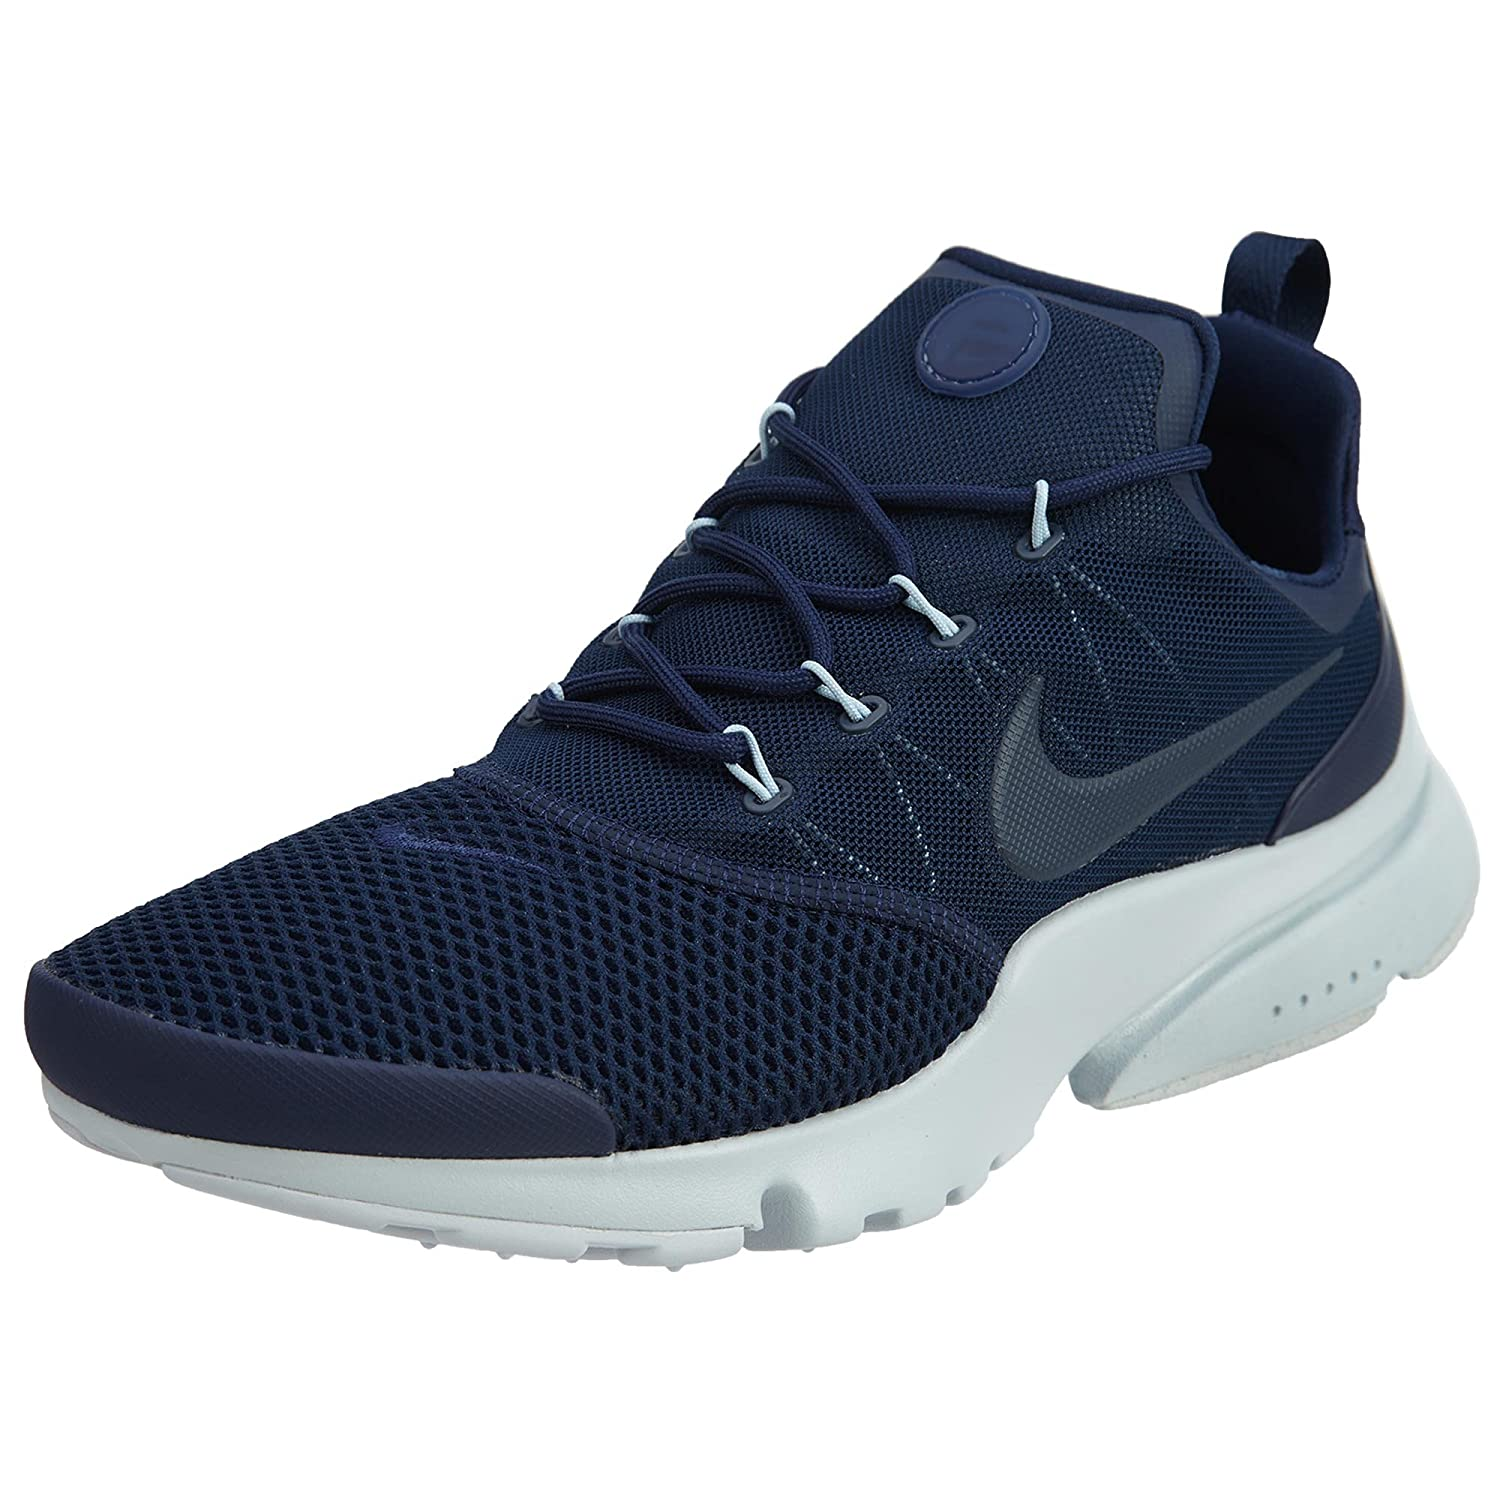 8ef14ed82d Nike Presto Fly Mens Style   908019 Style   908019-403 Size   13 D(M) US   Buy Online at Low Prices in India - Amazon.in